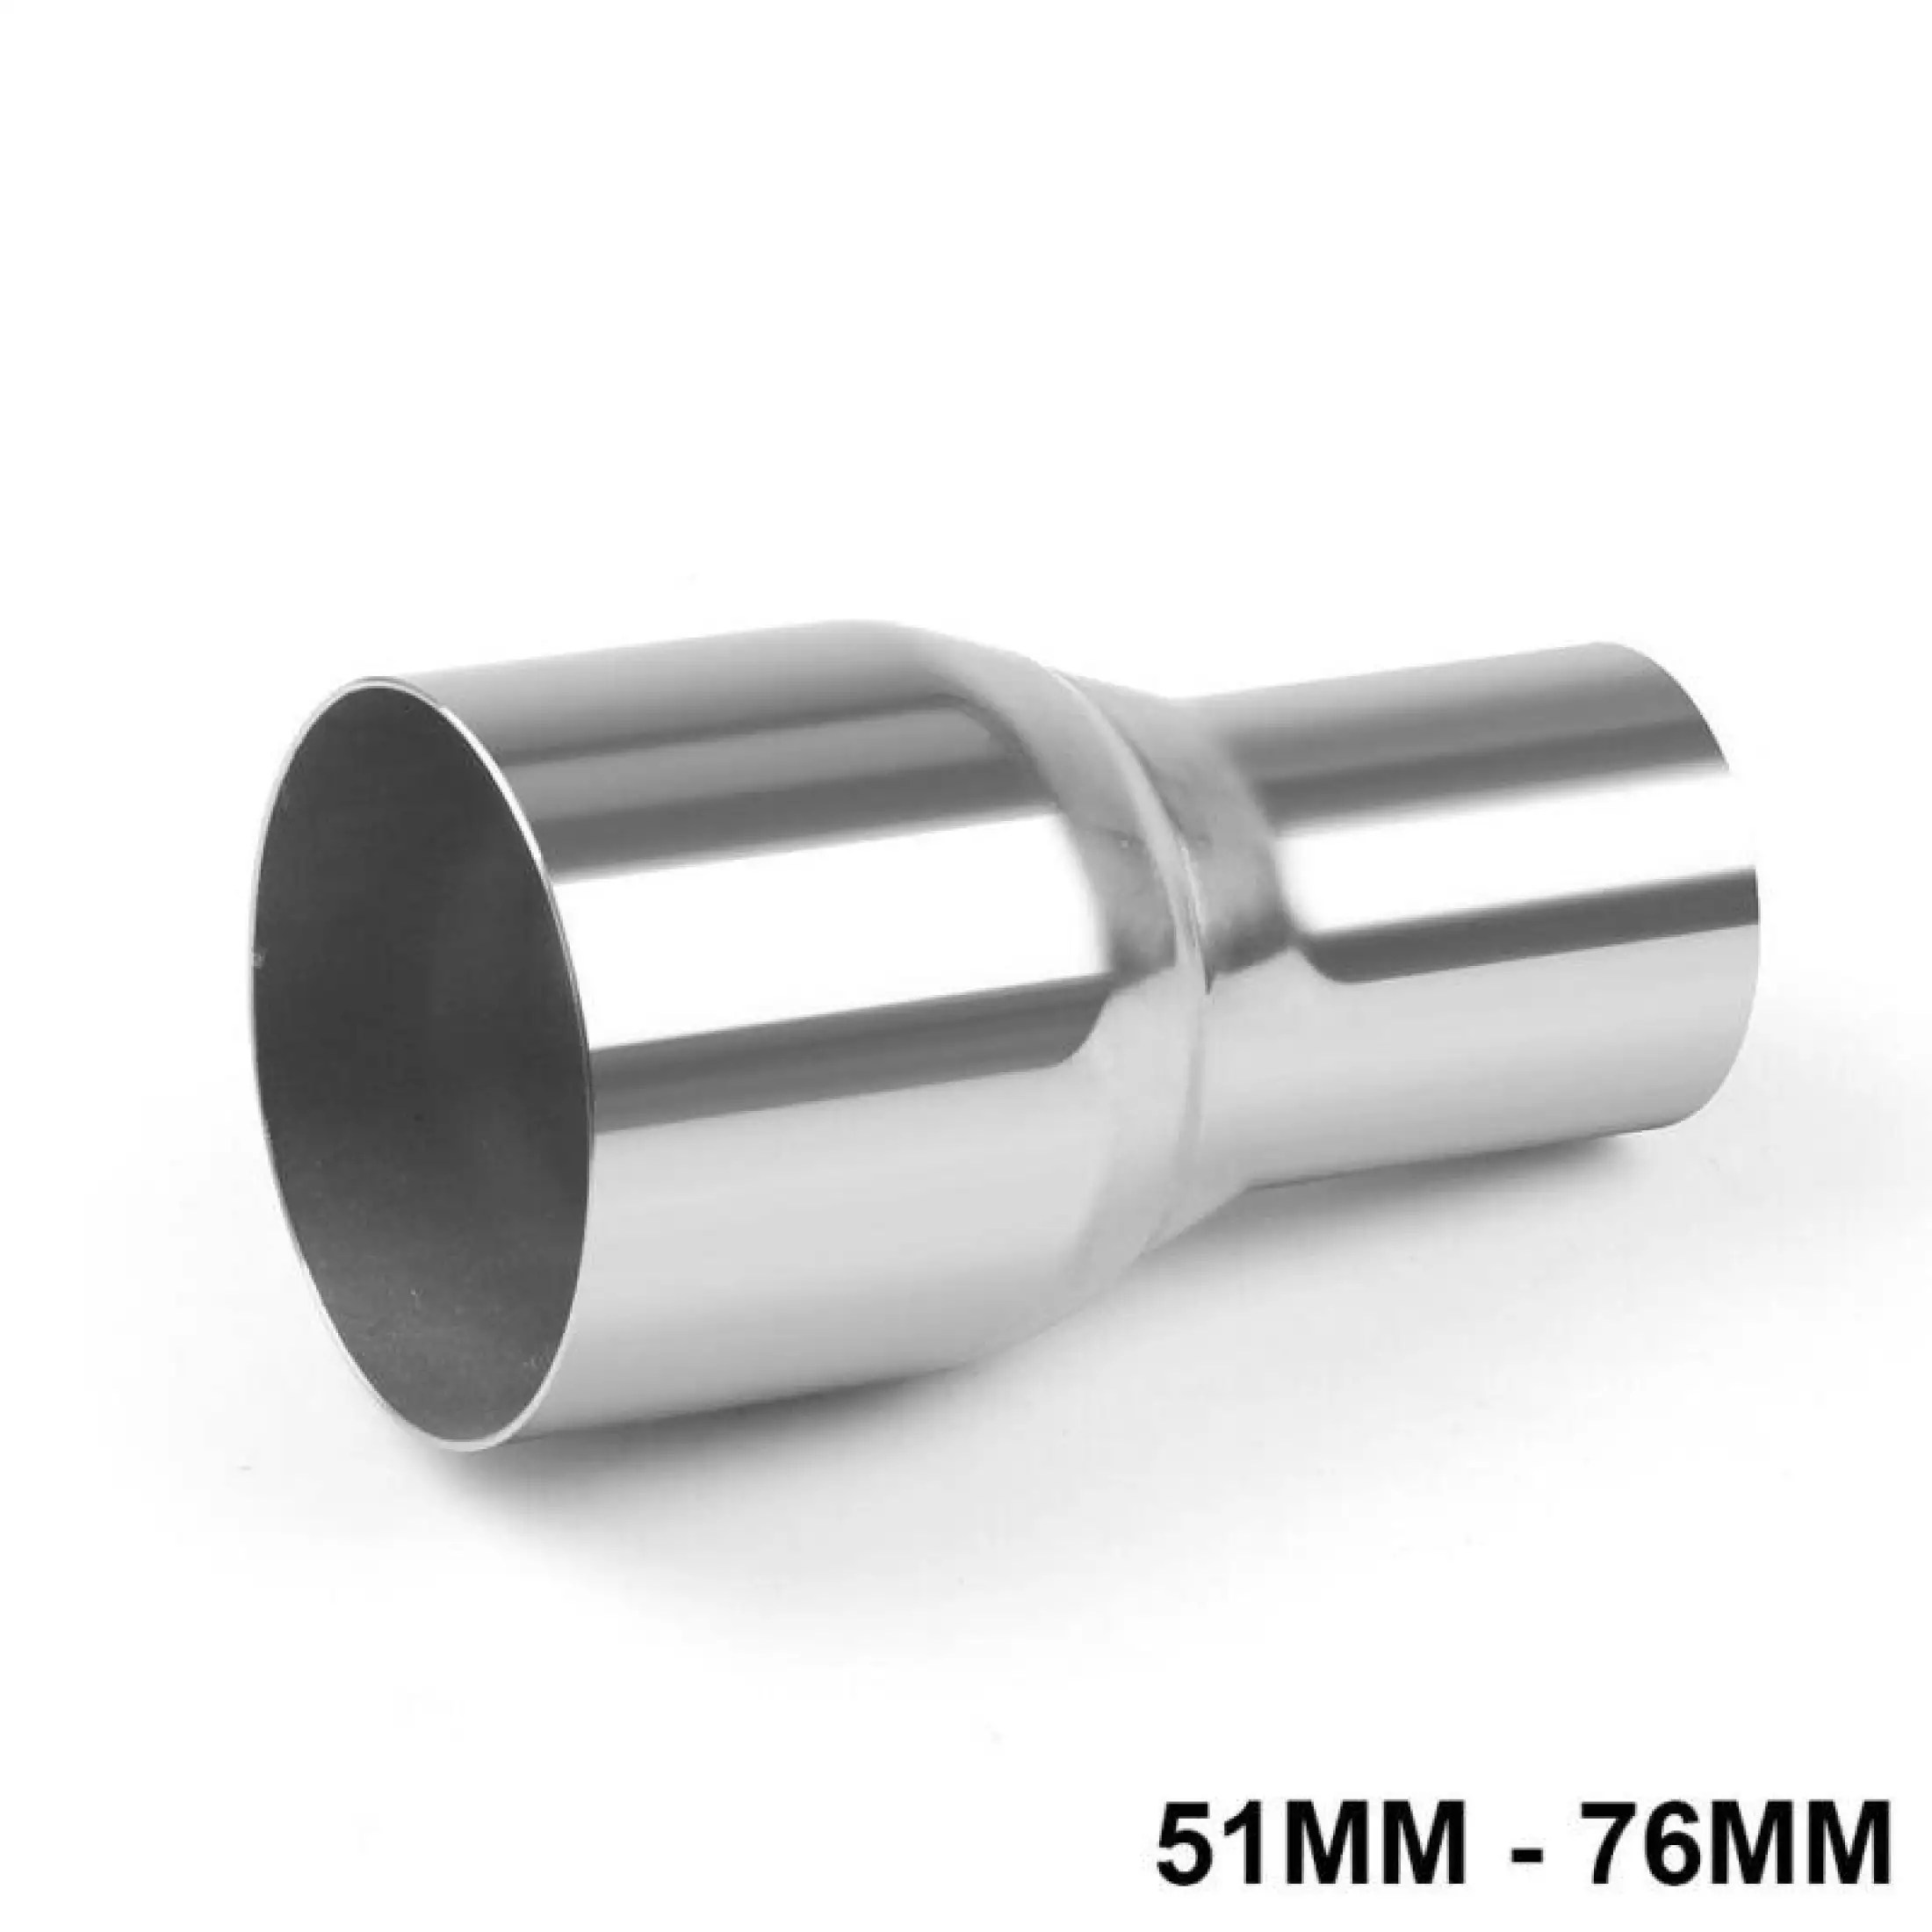 2 to 3 od car exhaust pipe connector tube adapter reducer stainless steel exhaust pipe connector length 143mm